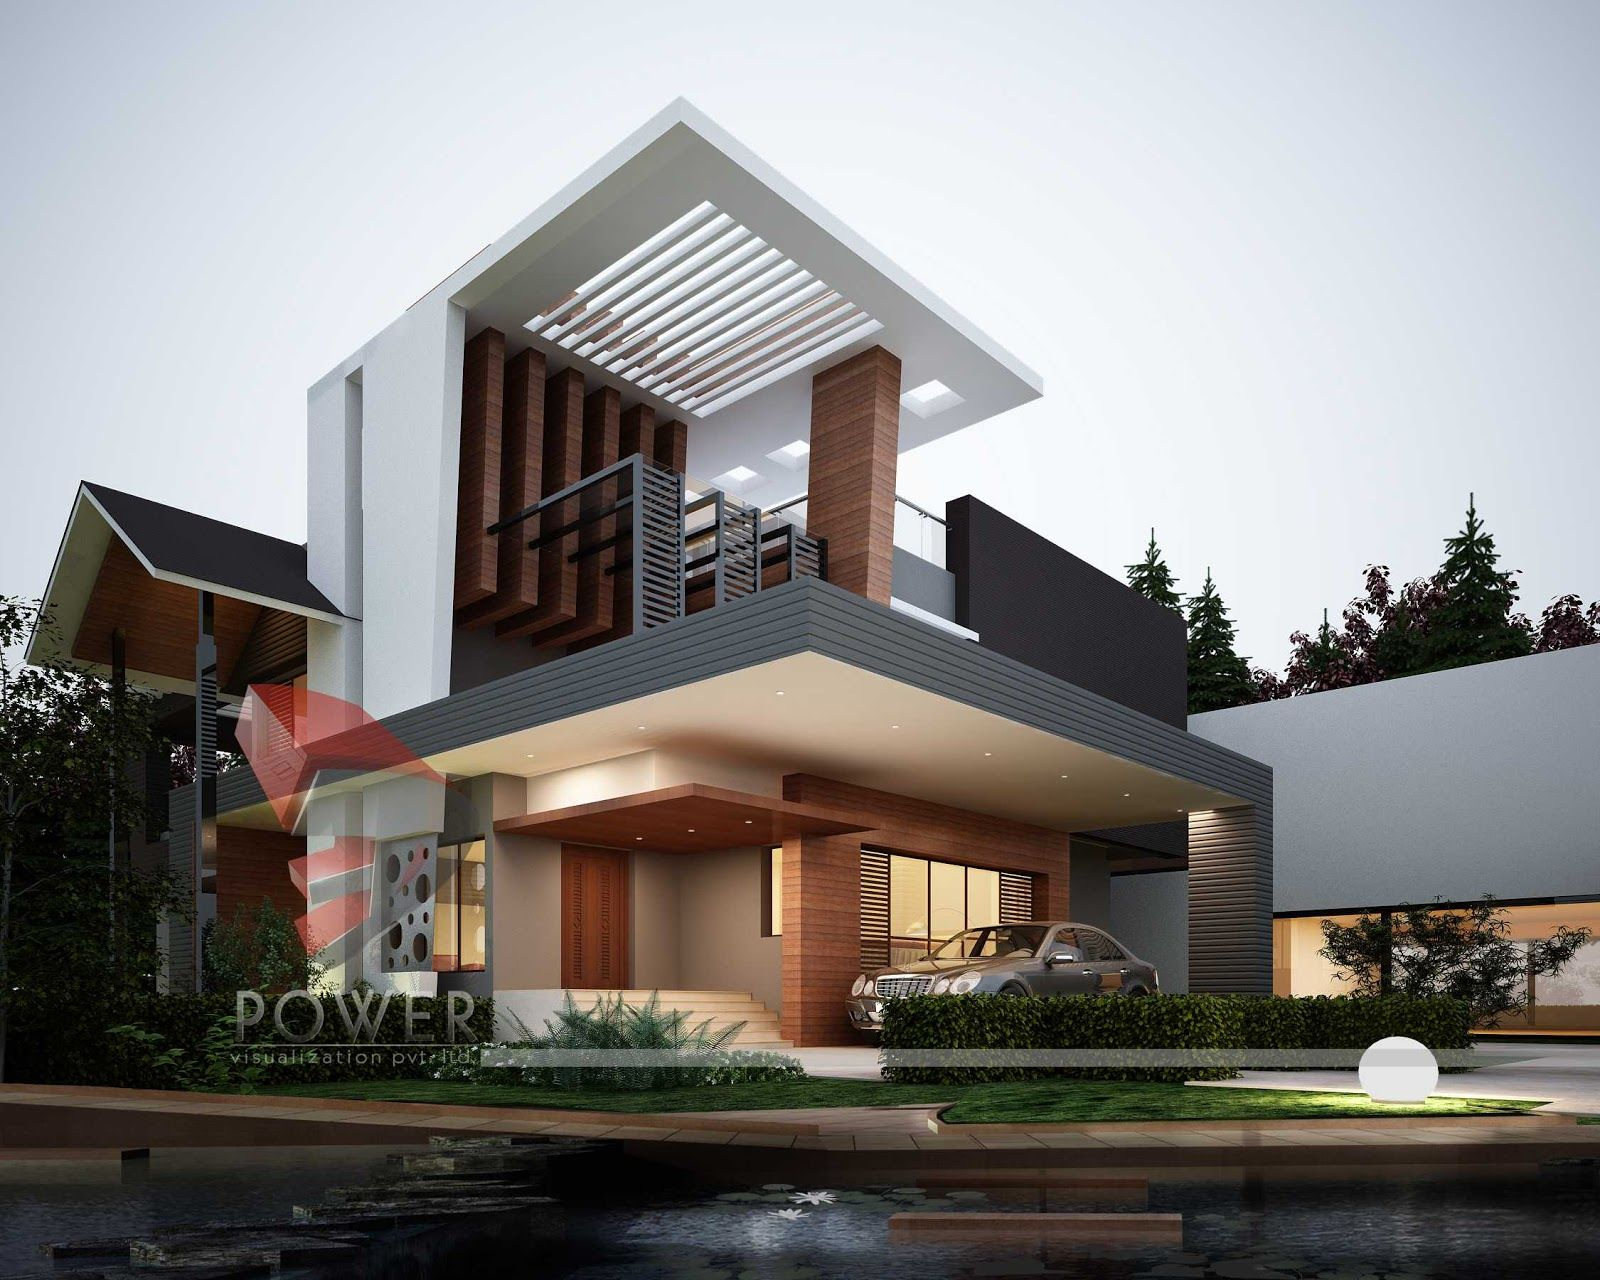 Modern architecture house design ideas magnificent ultra modern home designs